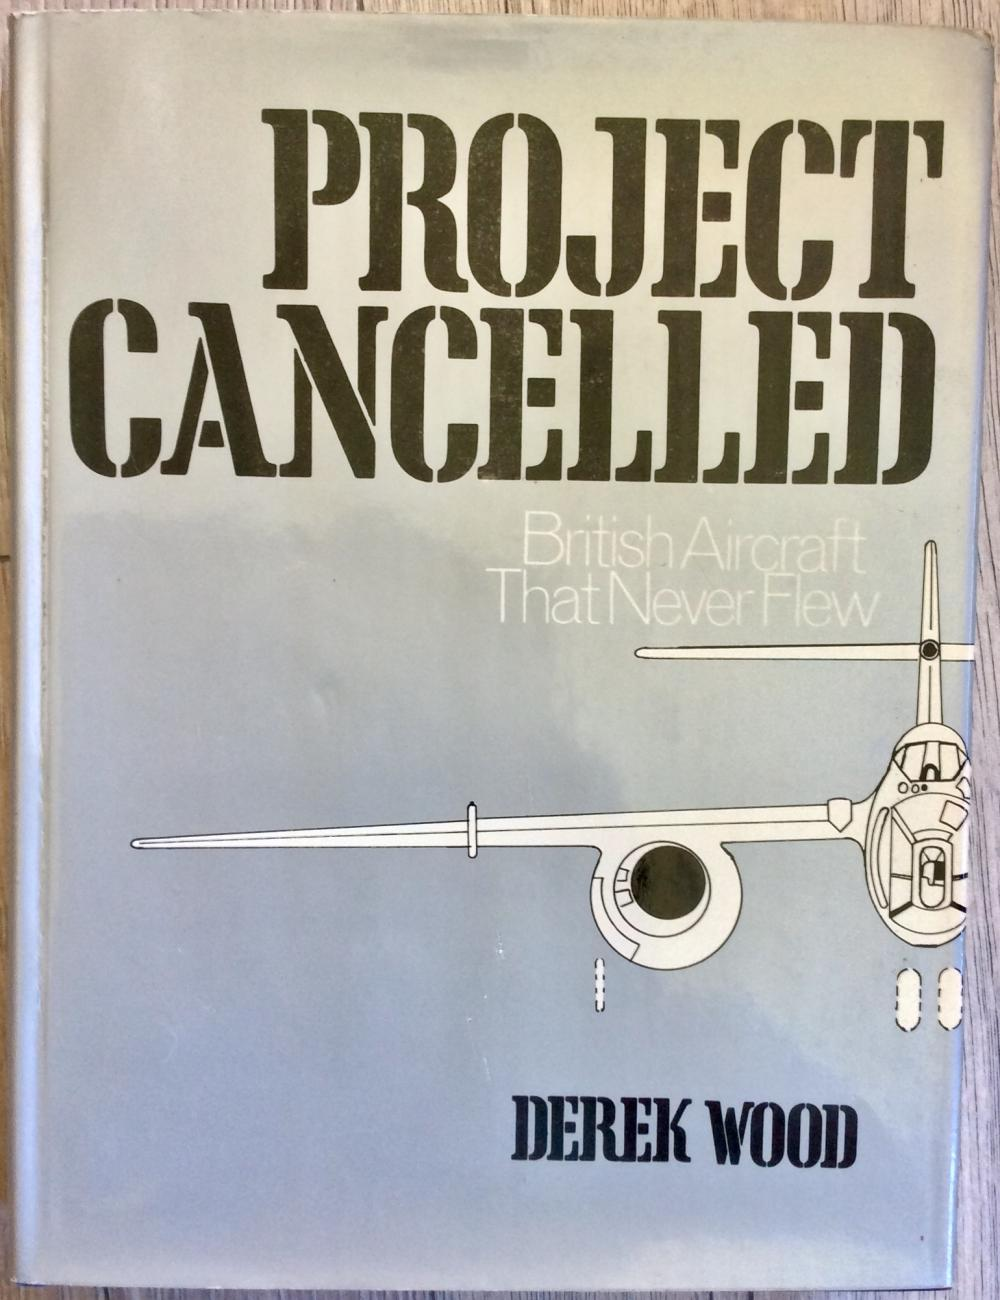 """Project Cancelled"" by Derek Wood VINTAGE 1975 Hardcover History Of Failed British Air Designs 1st Edition 1st Printing In DJ"